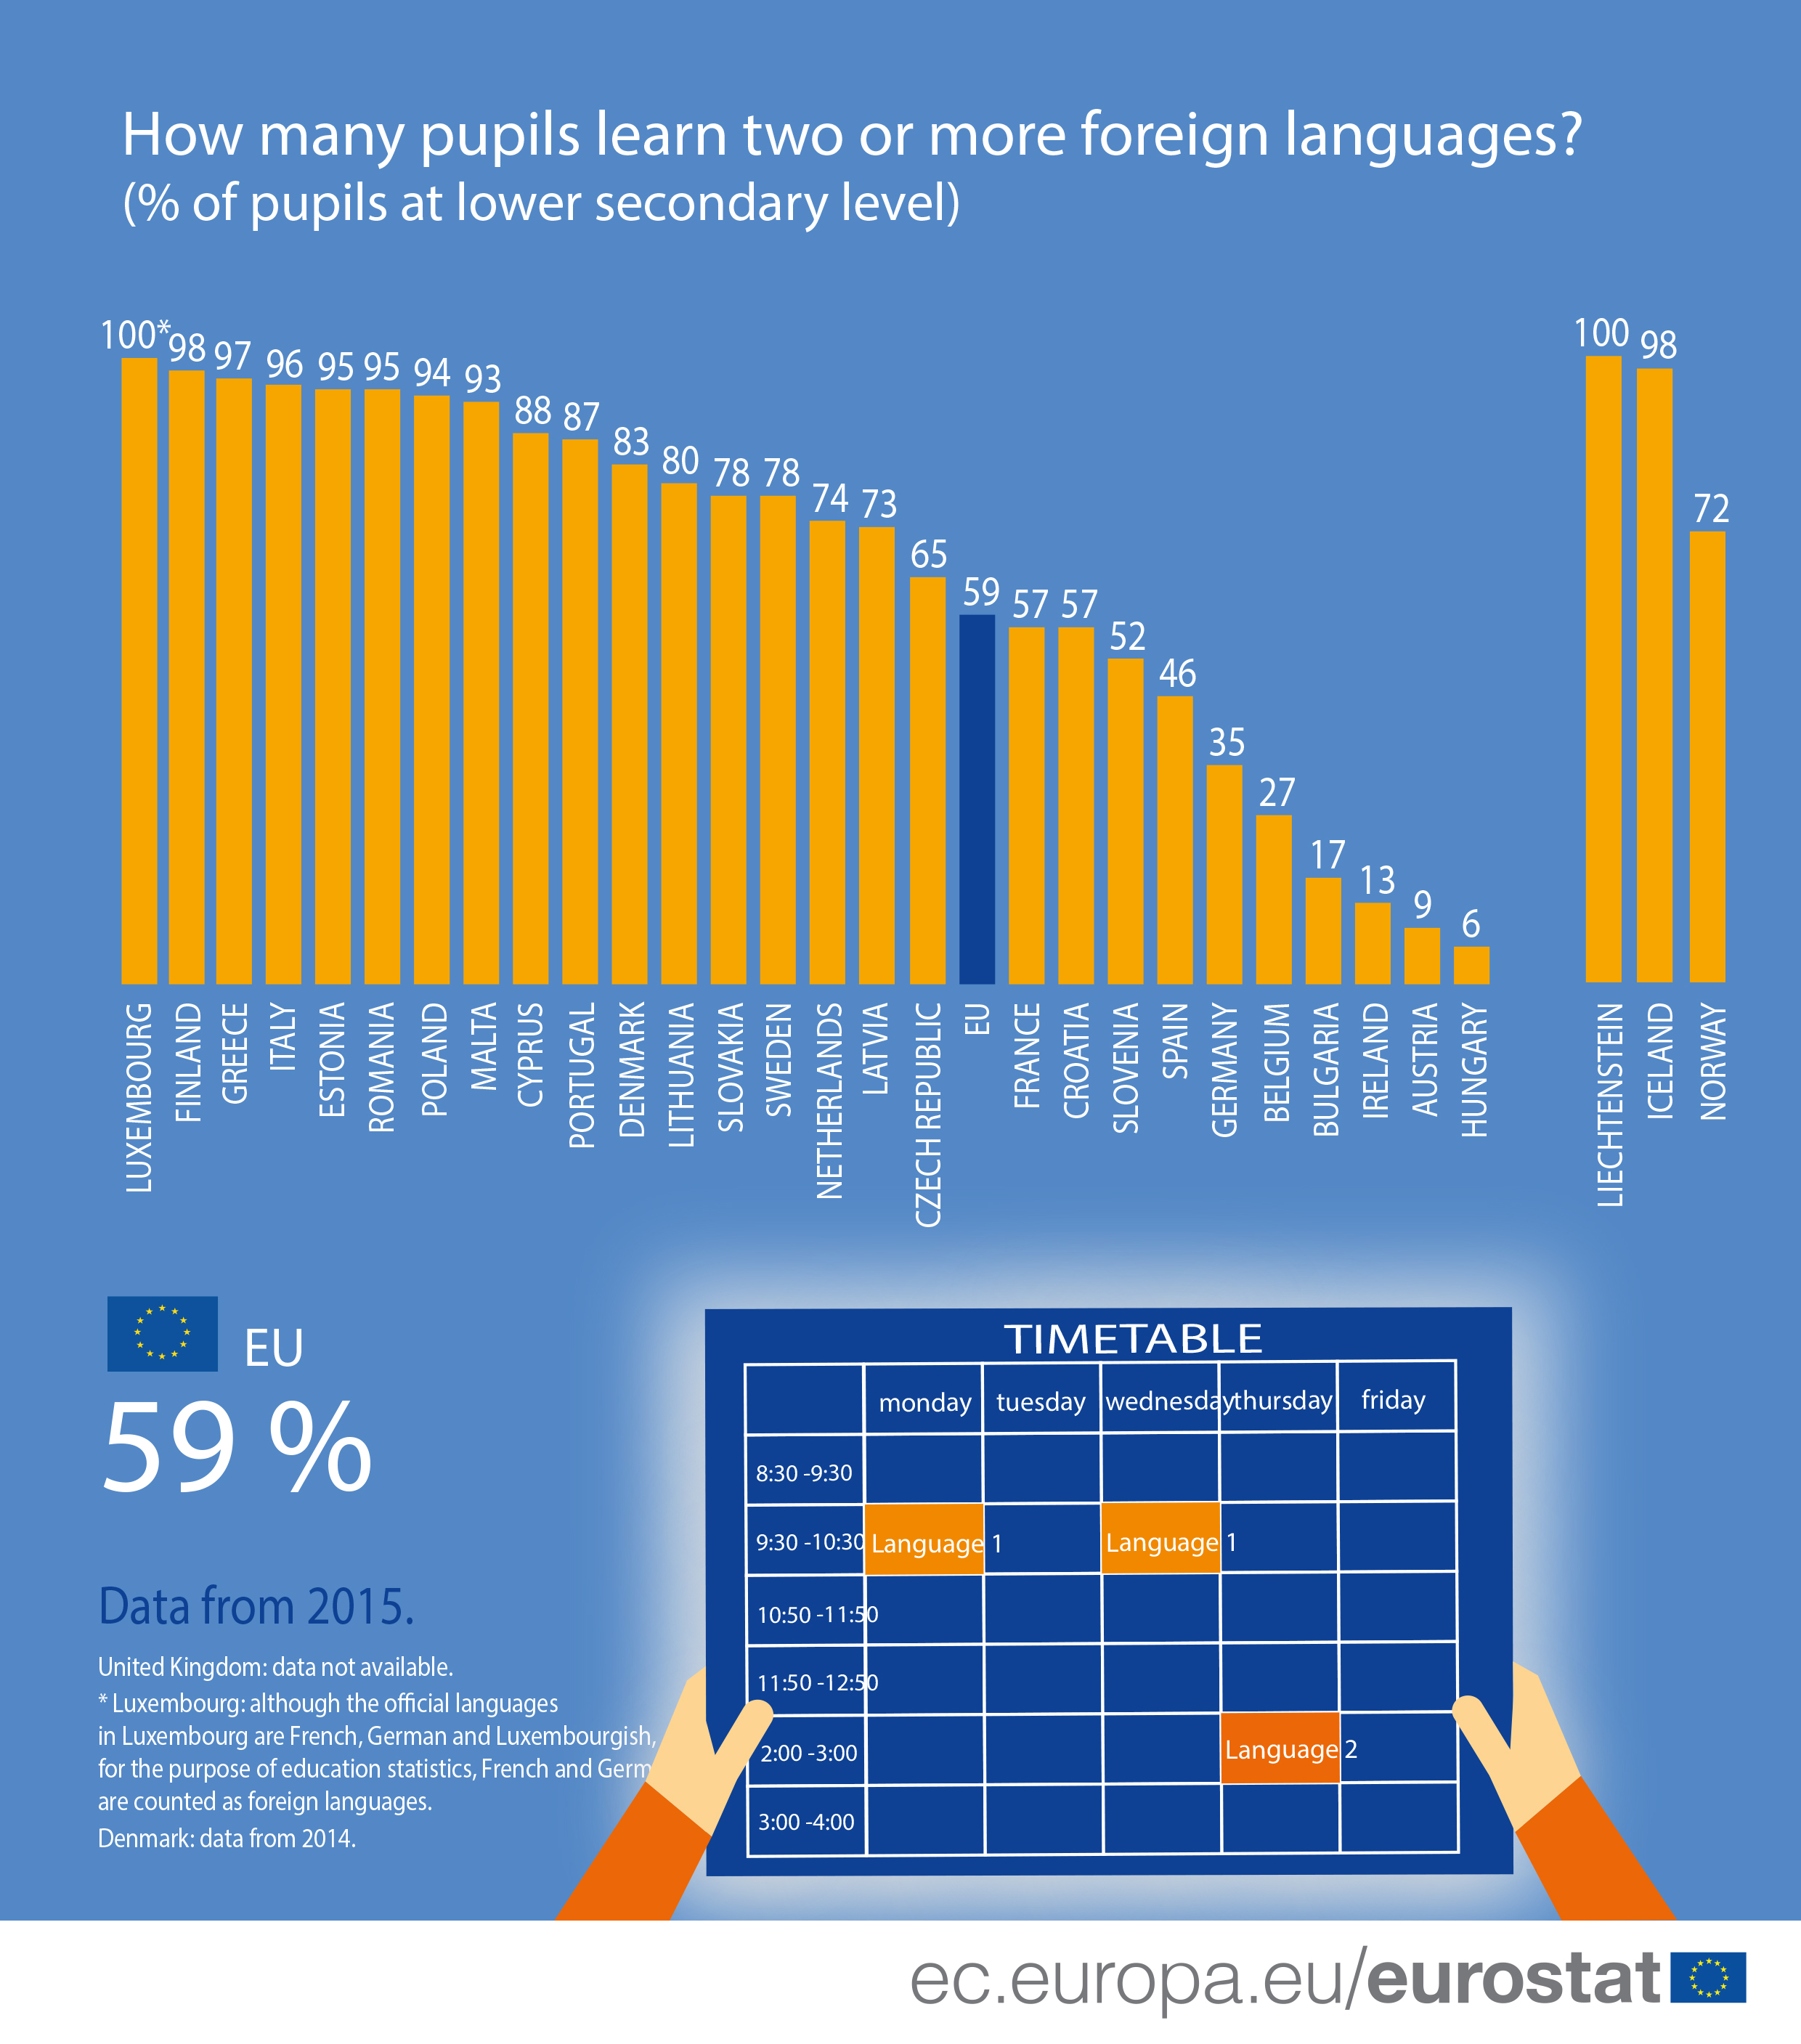 Graphic: How many pupils learn two or more foreign languages